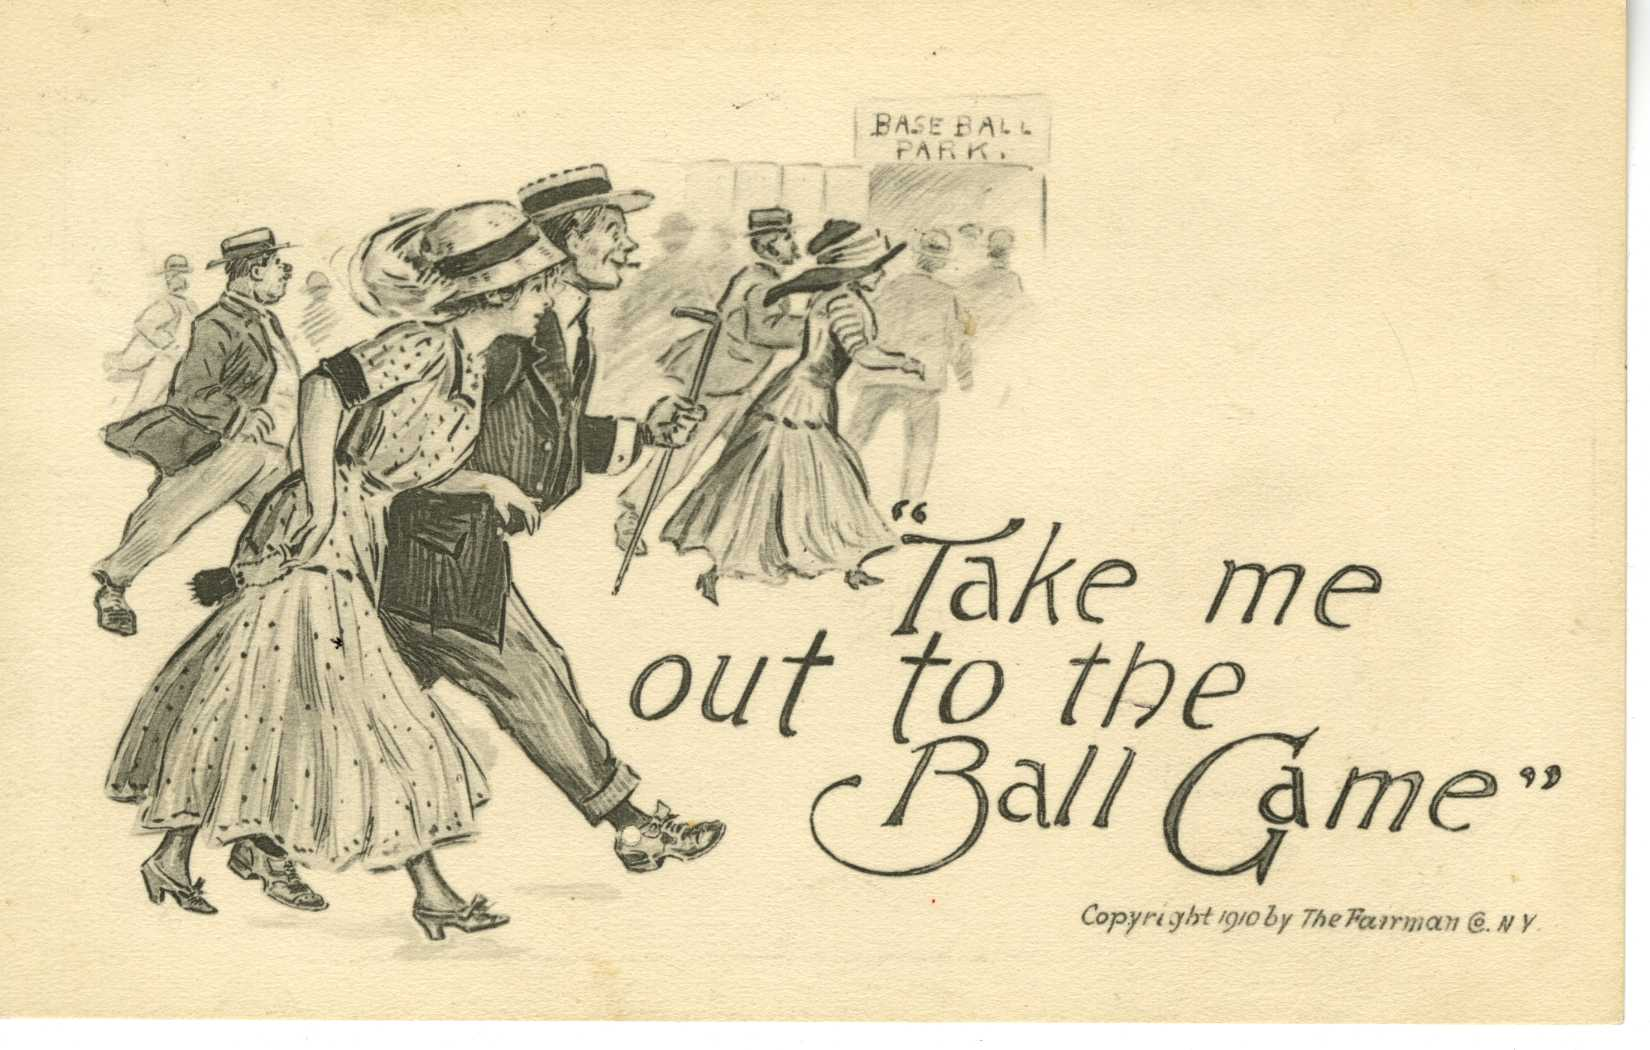 figure-2-take-me-out-to-the-ball-game-postcard-1910.jpg